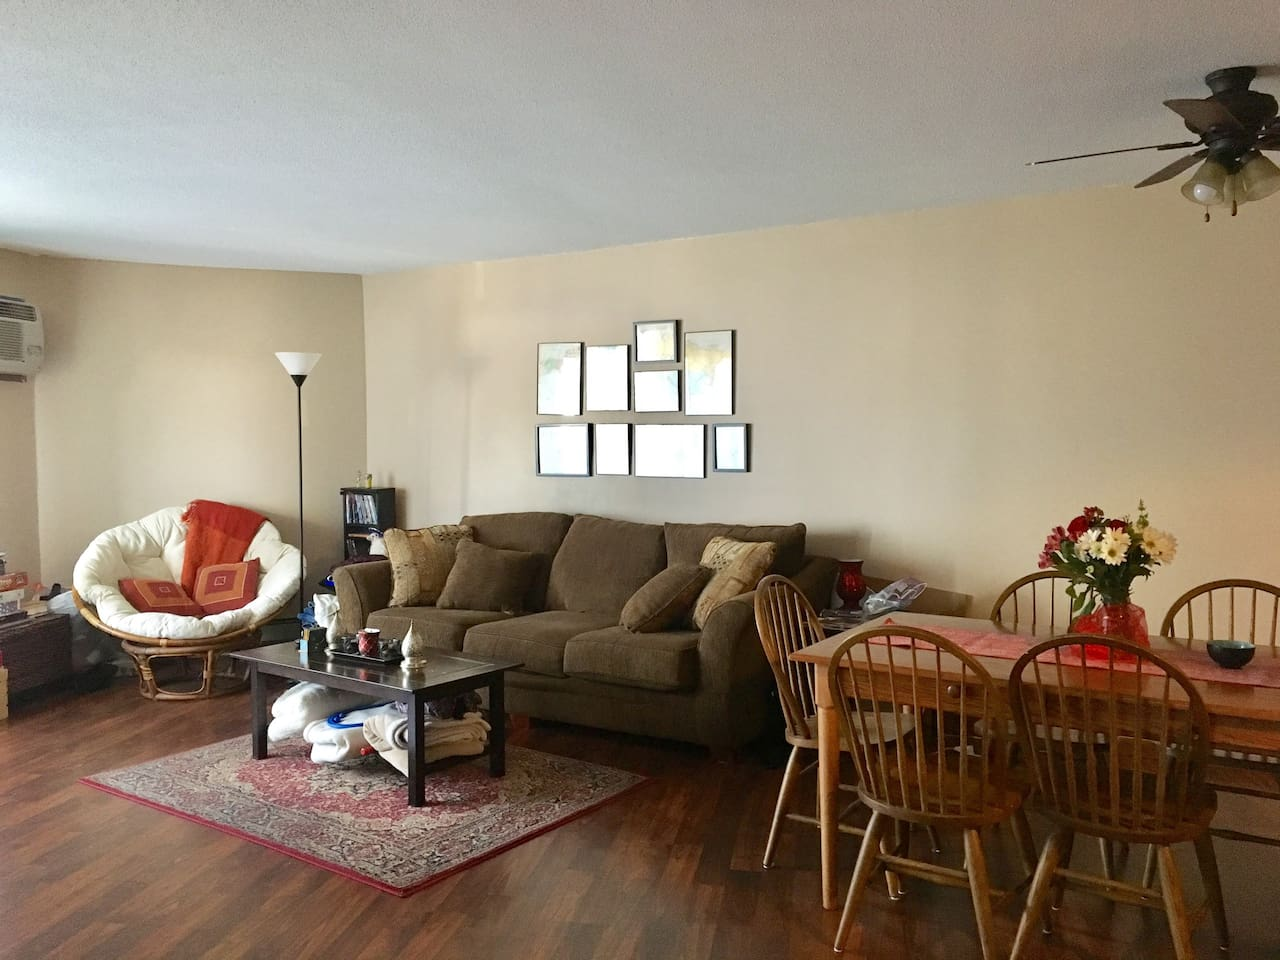 Full access to shared living dinning area with TV, Netflix and secure WiFi.  Easy access to patio and views of downtown Minneapolis or the Mississippi River.